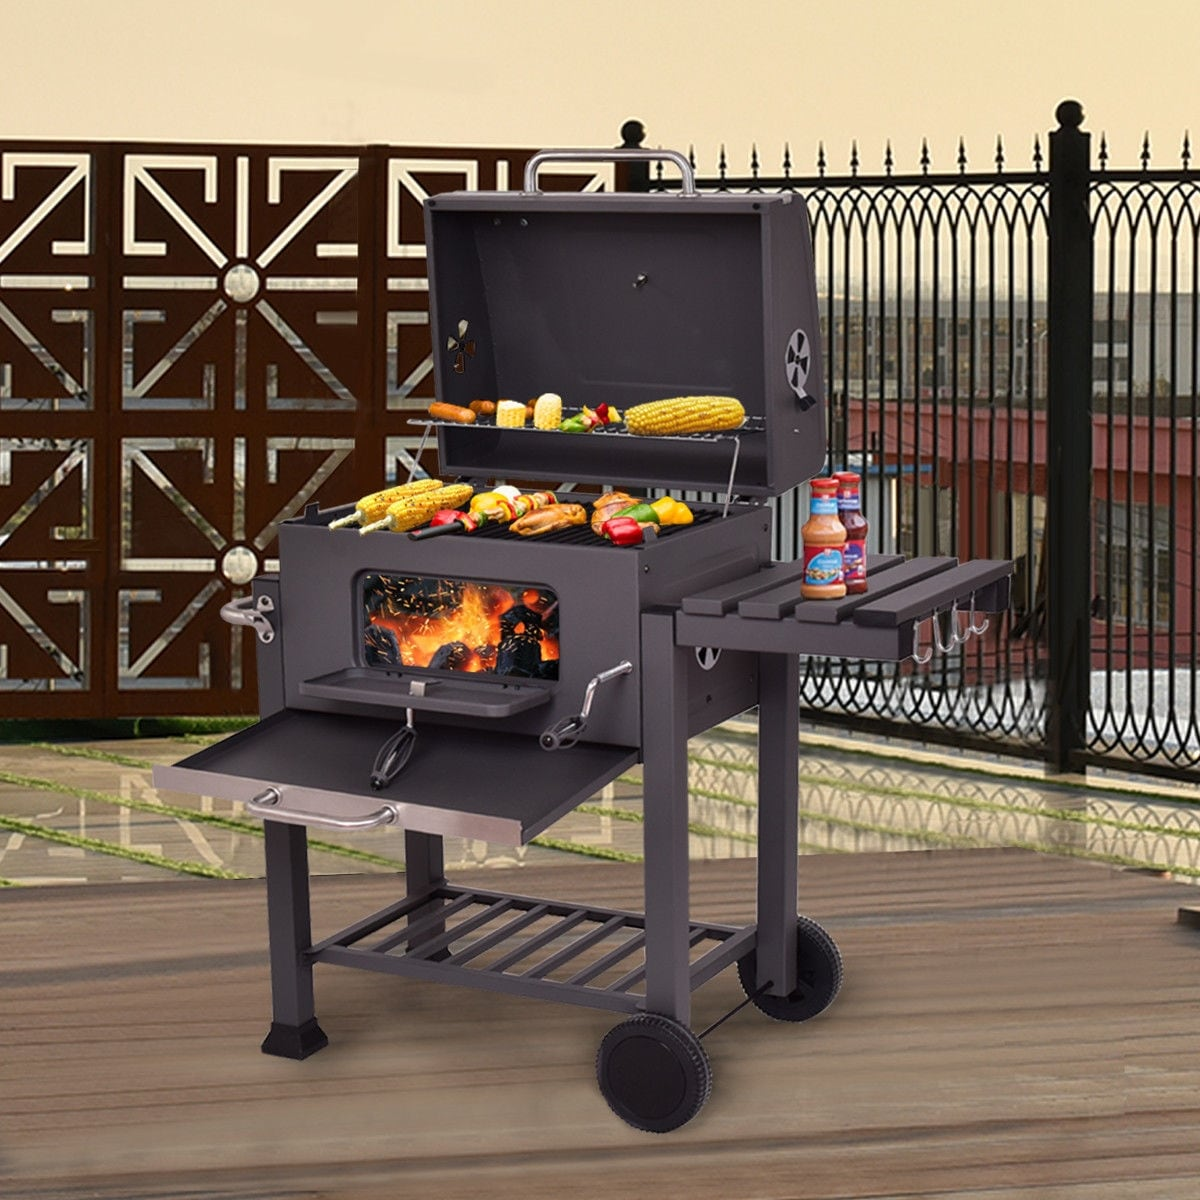 Costway Charcoal Grill Barbecue Bbq Outdoor Patio